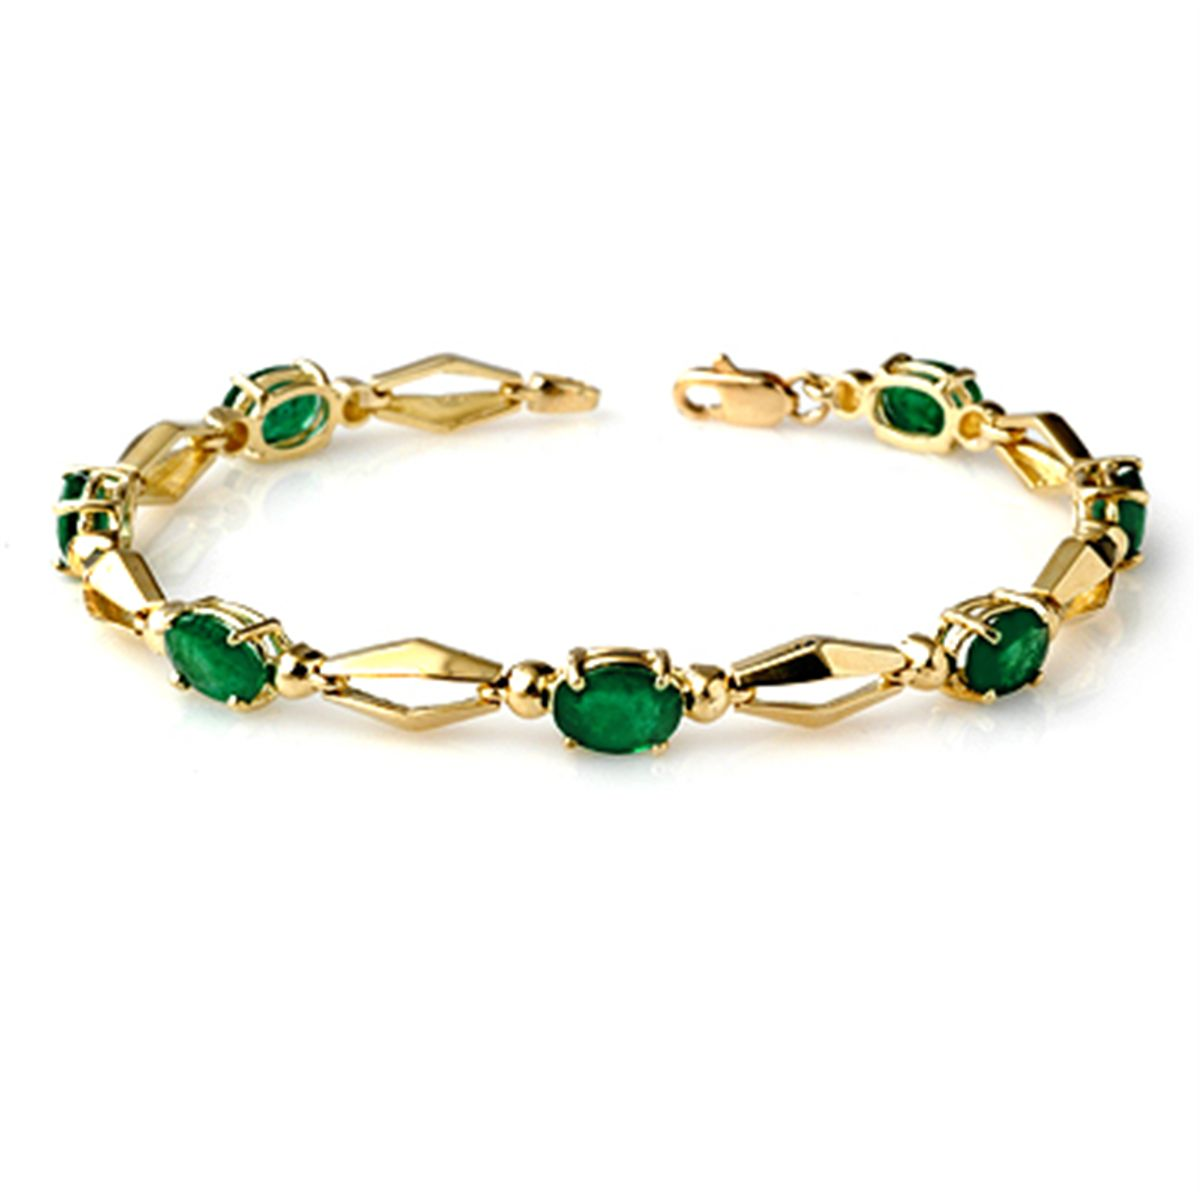 Well-known Genuine 5.0 ctw Emerald Bracelet 10K Yellow Gold CU59